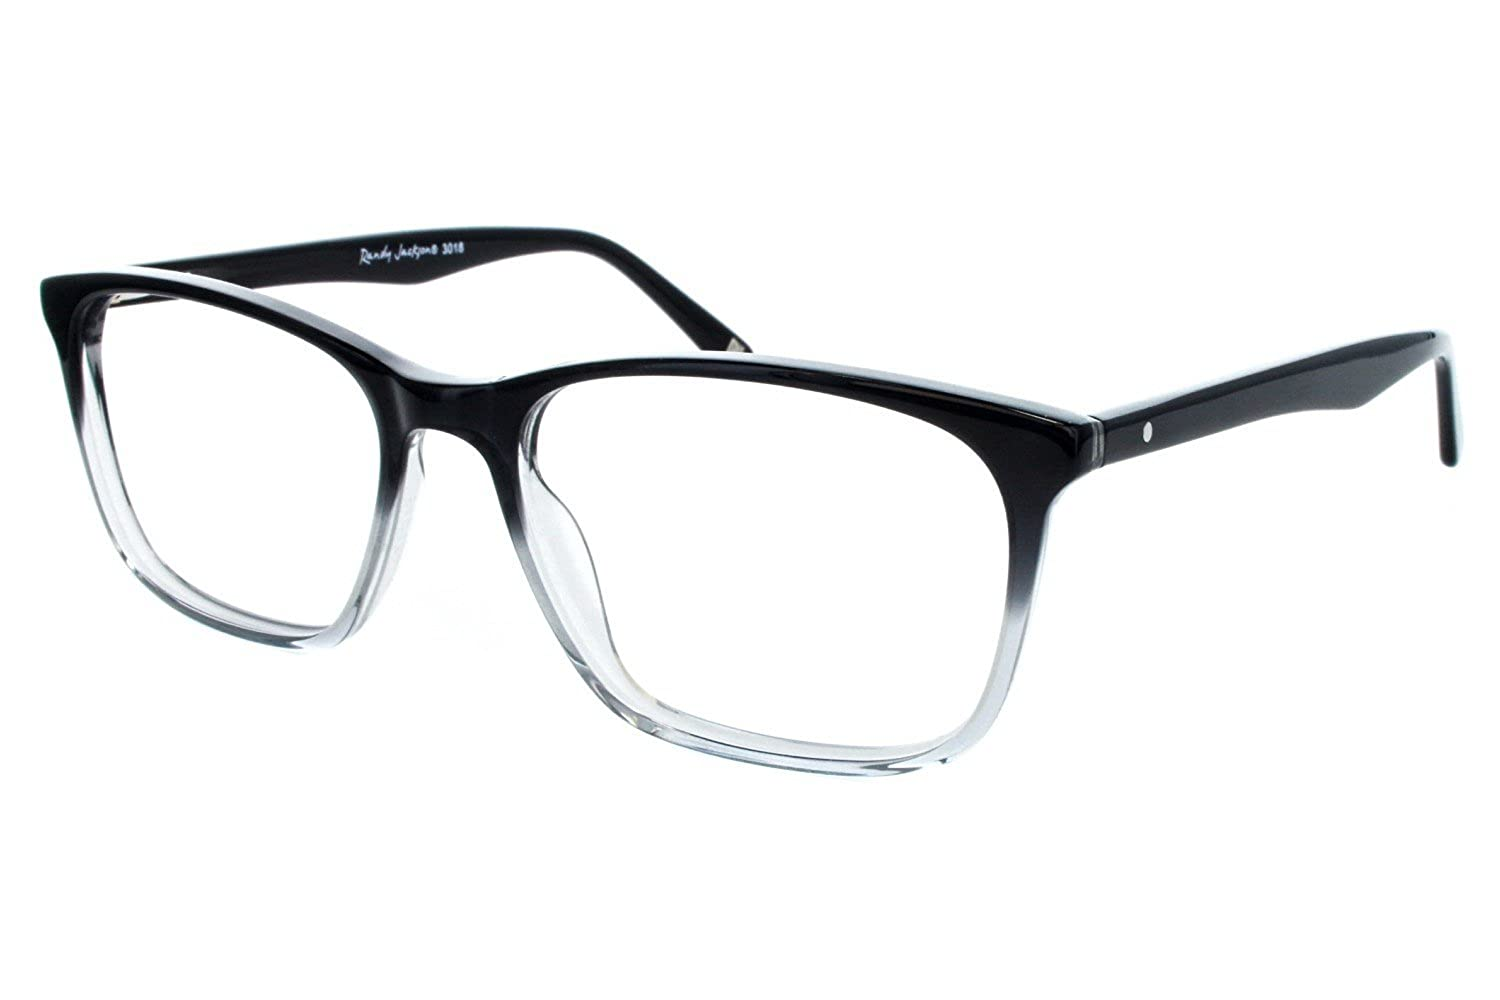 Amazon.com: Mens Unique Prescription Eyeglasses Frames Rxable 56-17 ...